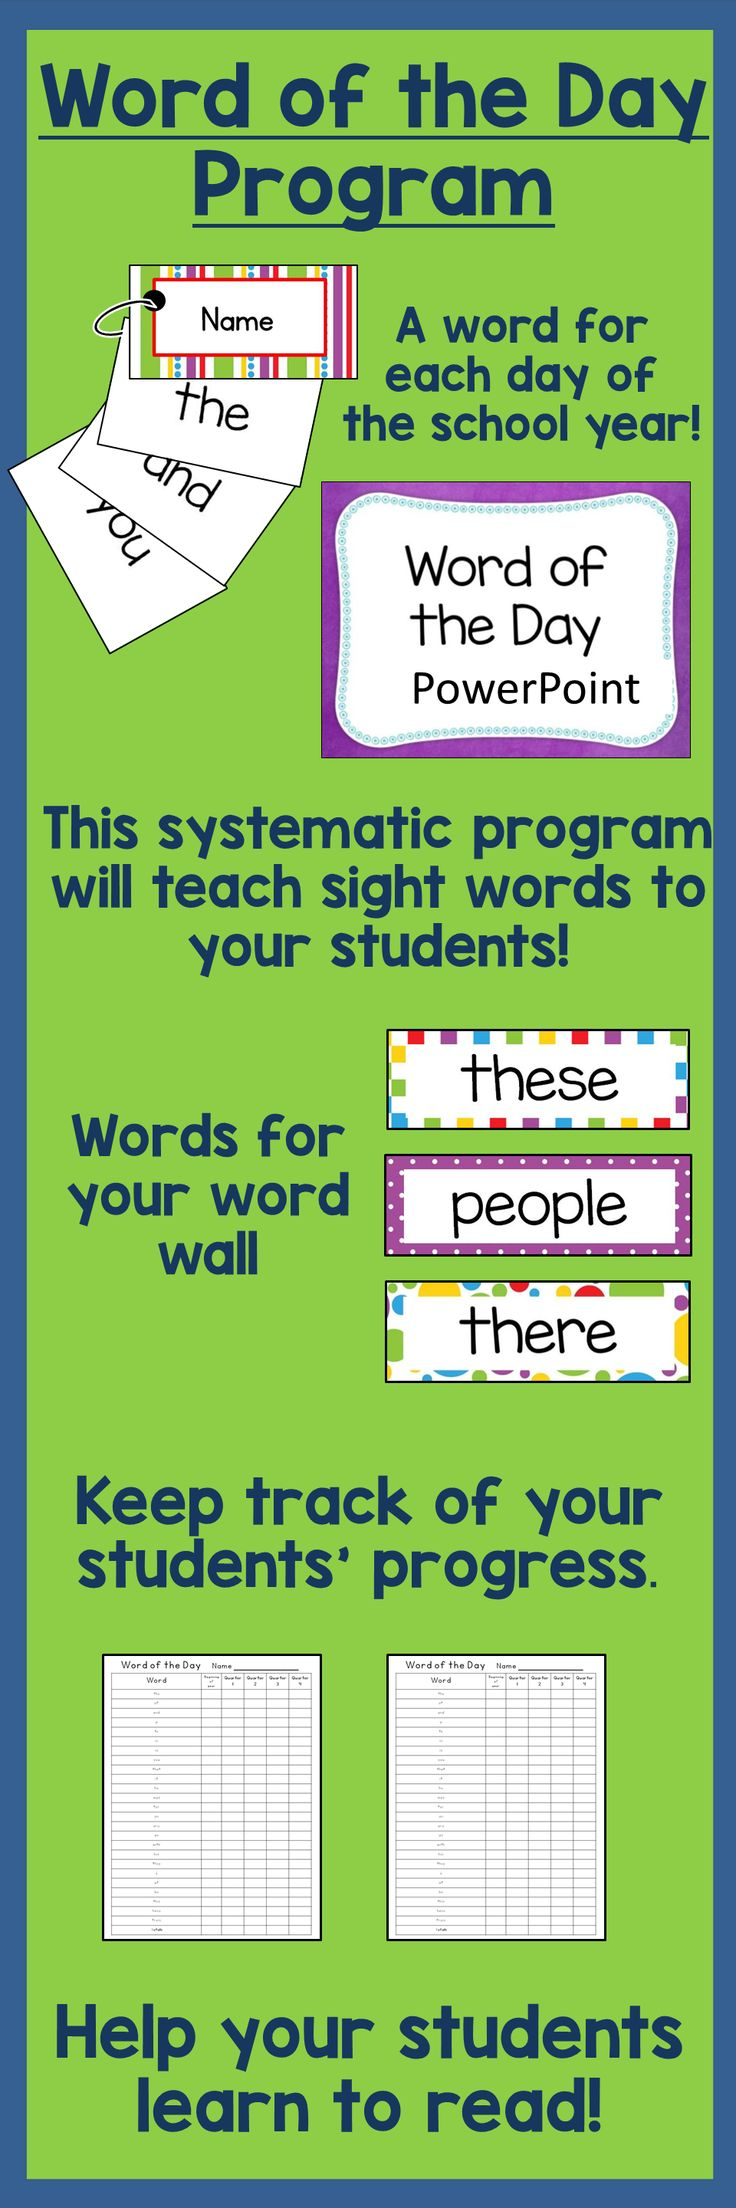 Sight words are easy with the Word of the Day  Program.  Your students will increase their reading ability by learning a new sight word every day!  Word cards, name cards,  PowerPoints, word wall words, and assessment sheets are included for the 200 most frequently used words. $